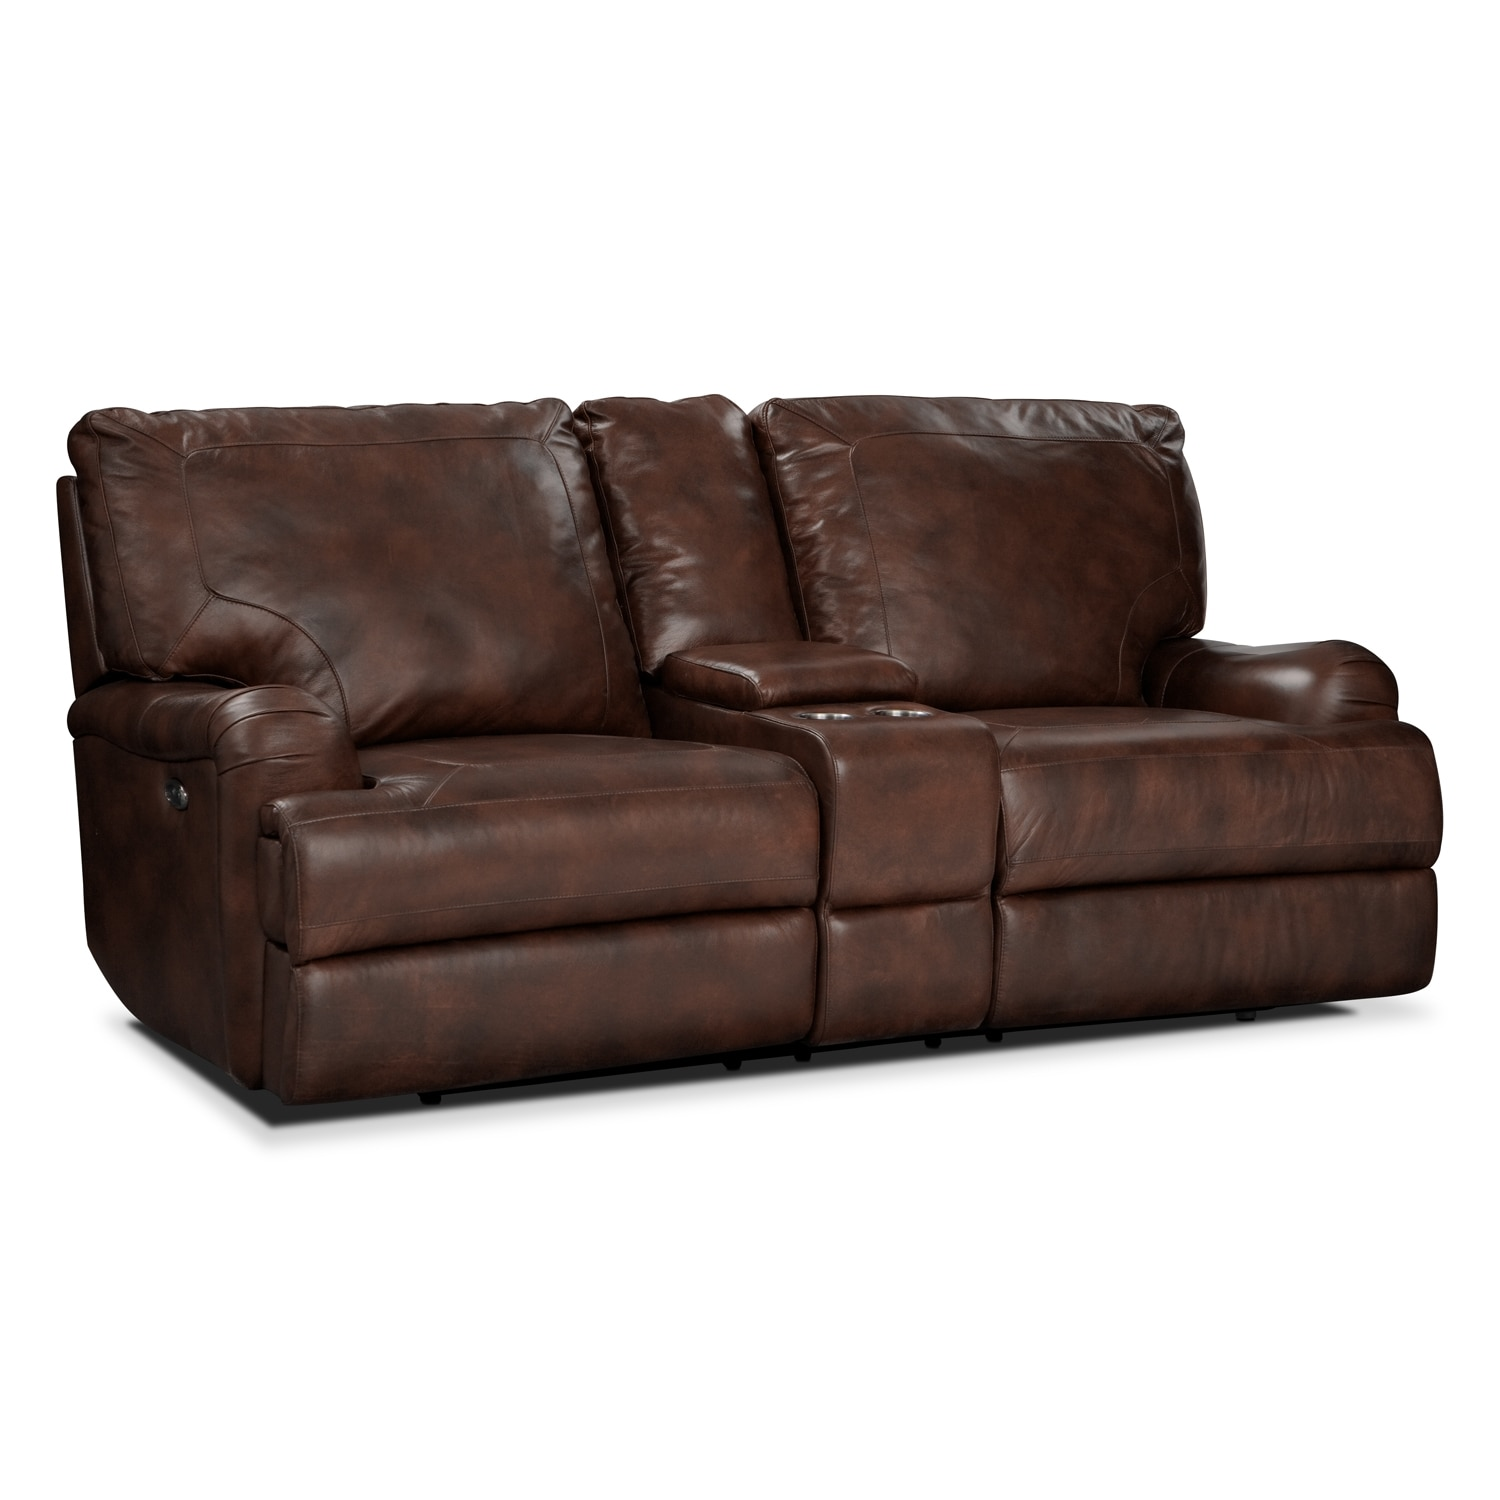 Power Reclining Sofa And Loveseat Sets Brown Reclining Sofa Loveseat And Power Recliner Set